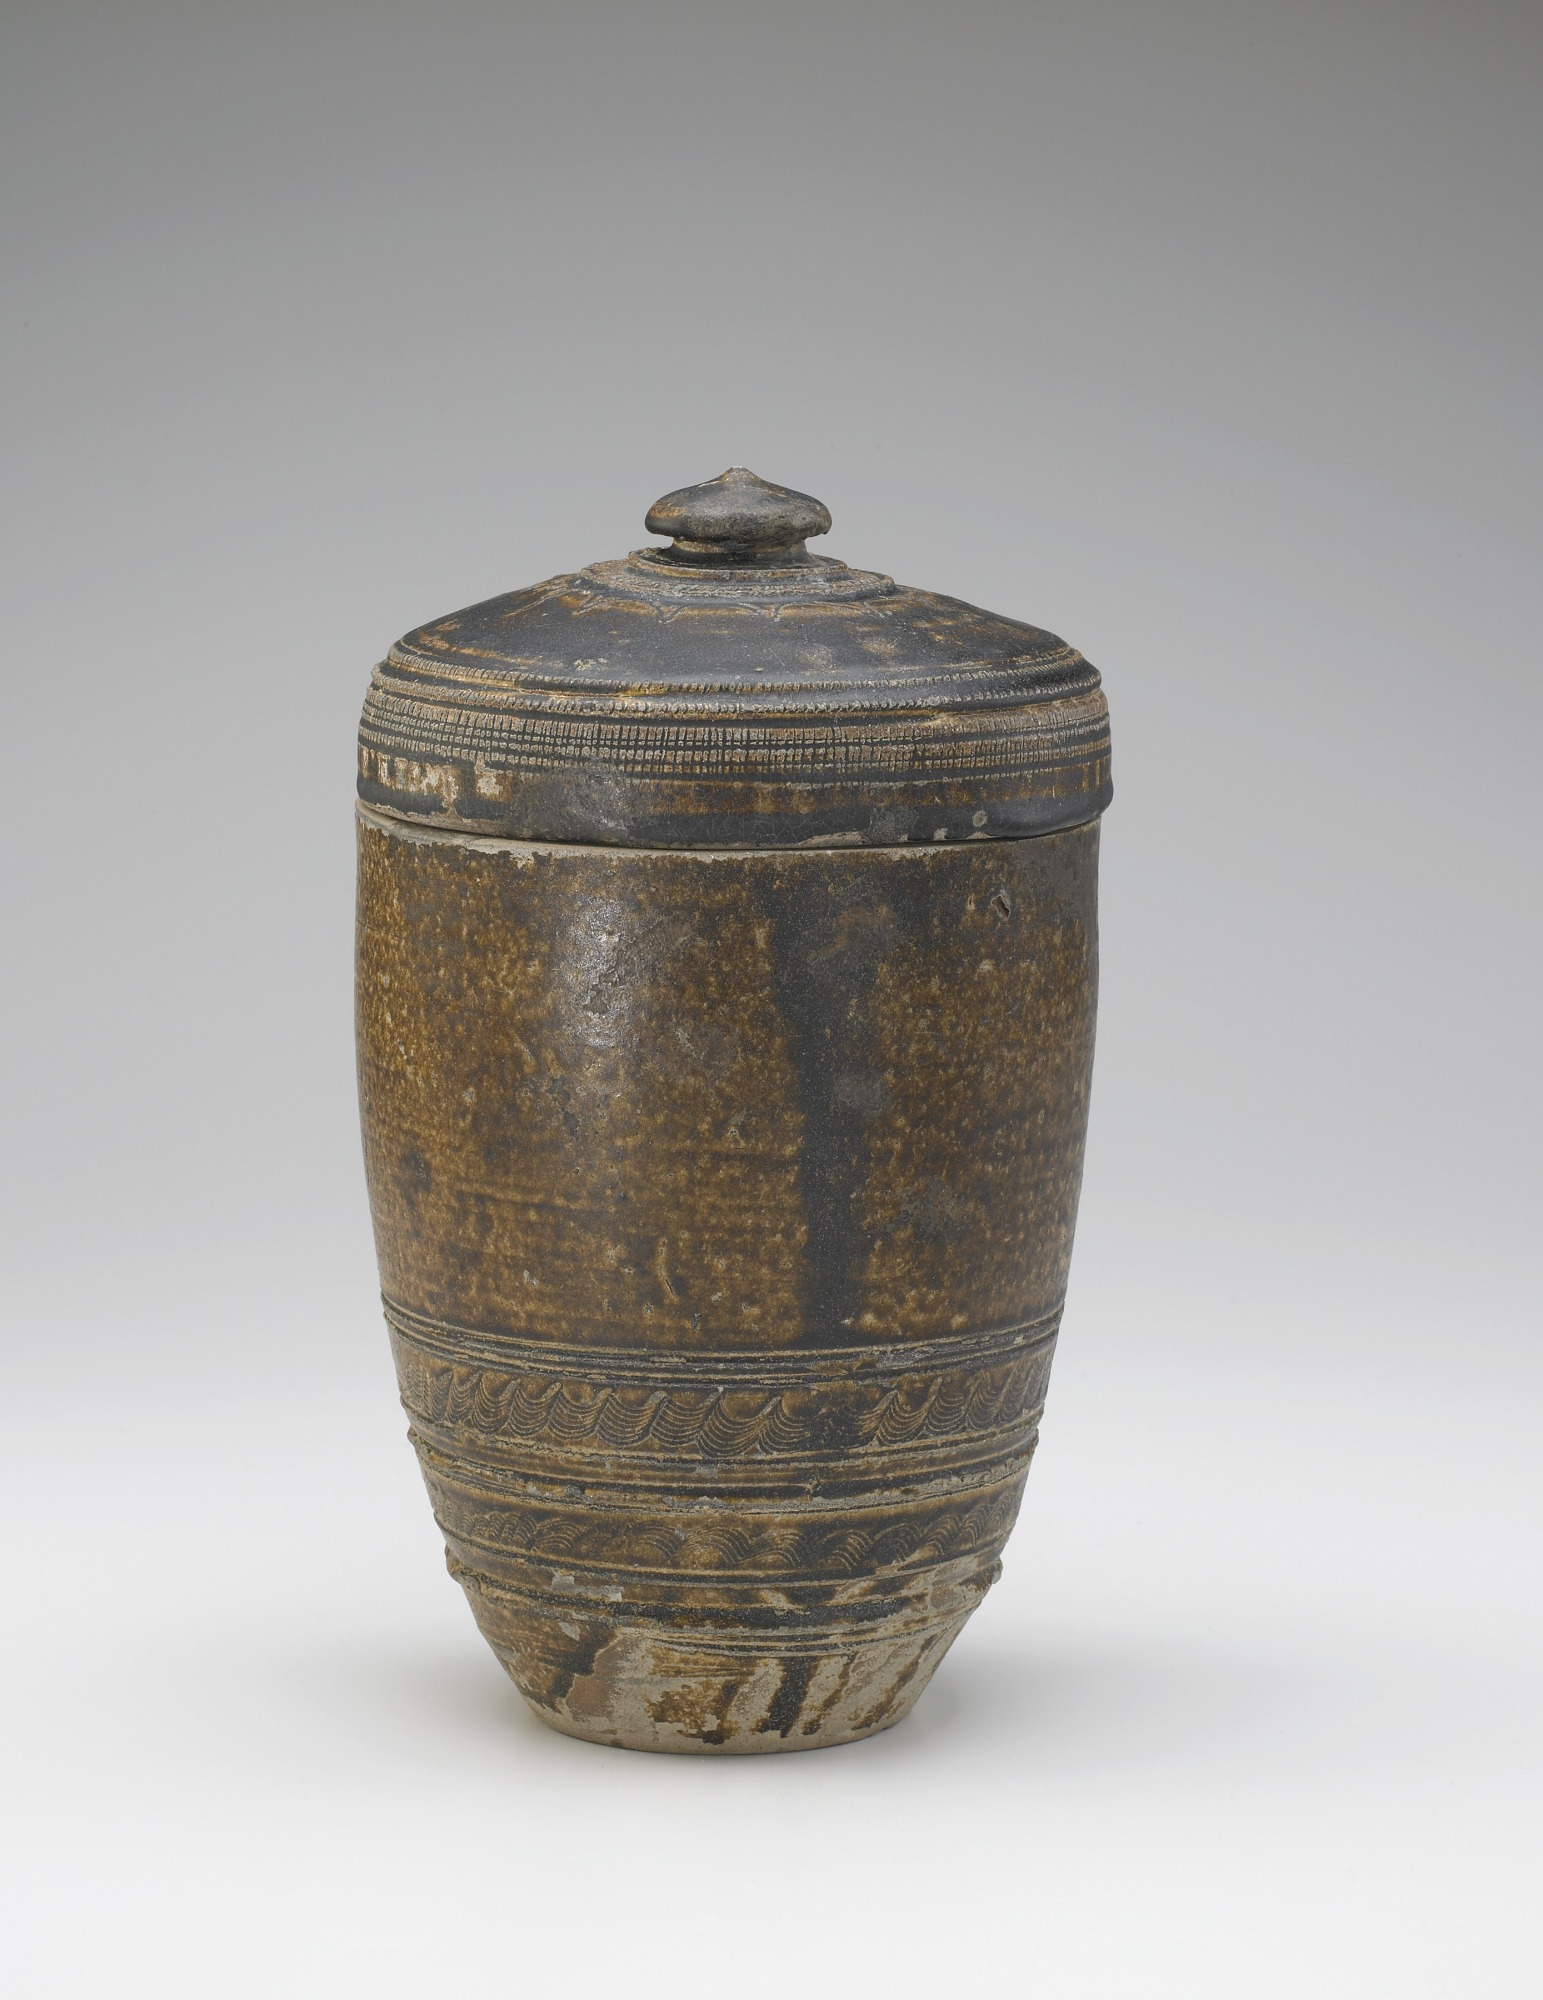 AB: Cylindrical jar with lid